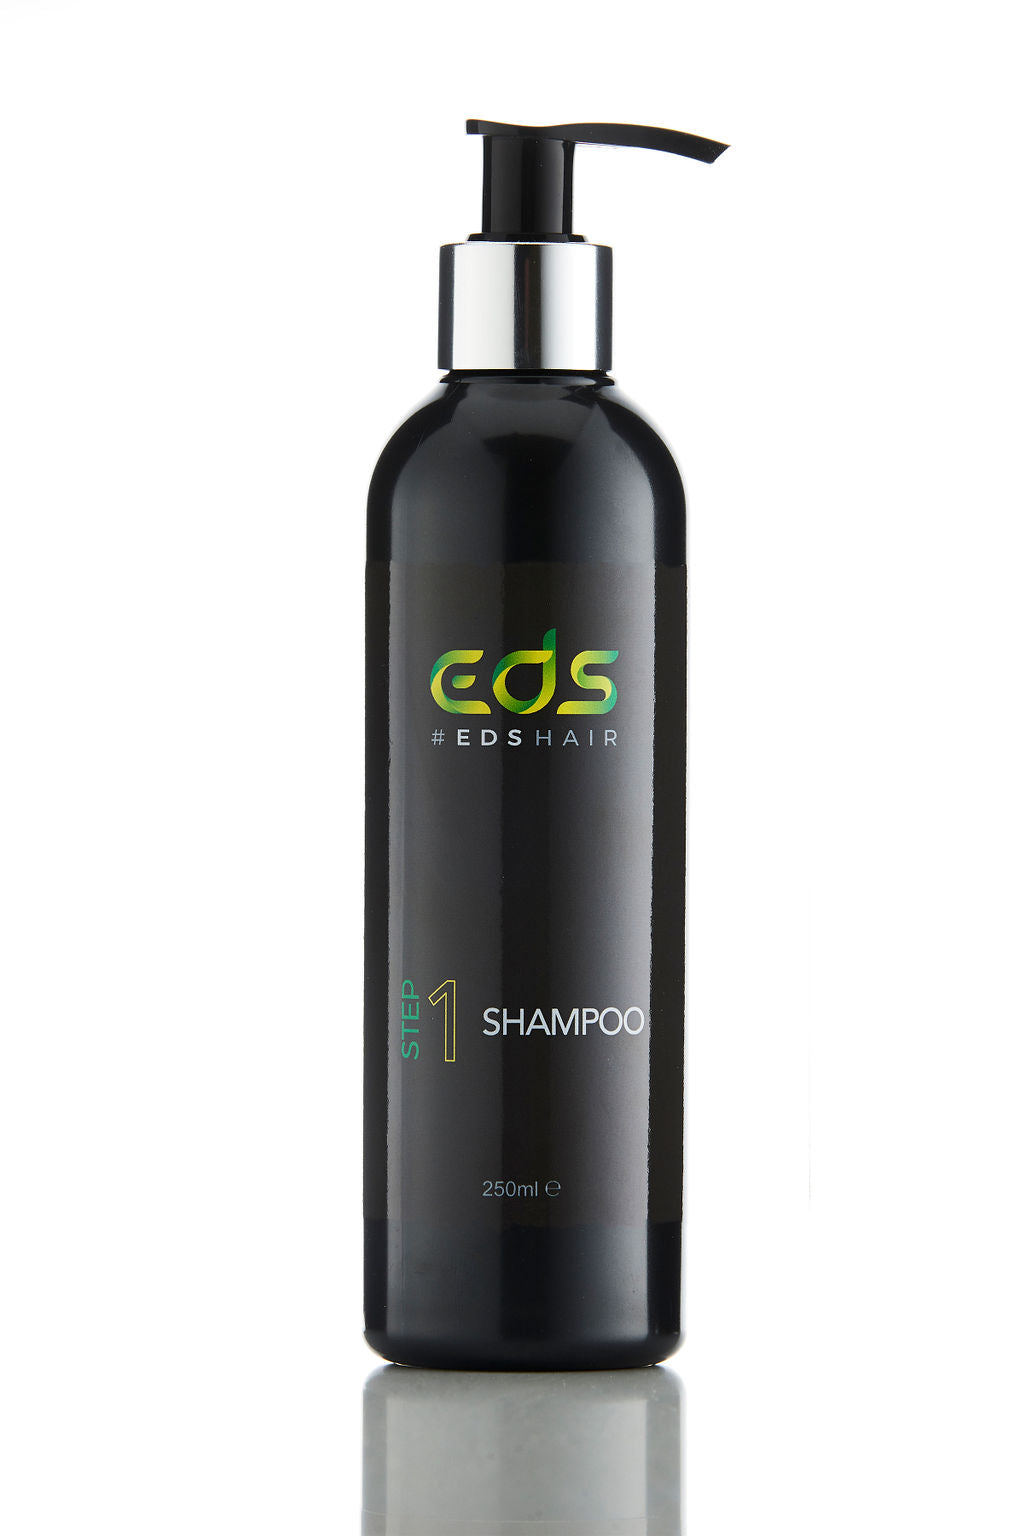 Eds Hair Bramhall Product Collection Shampoo